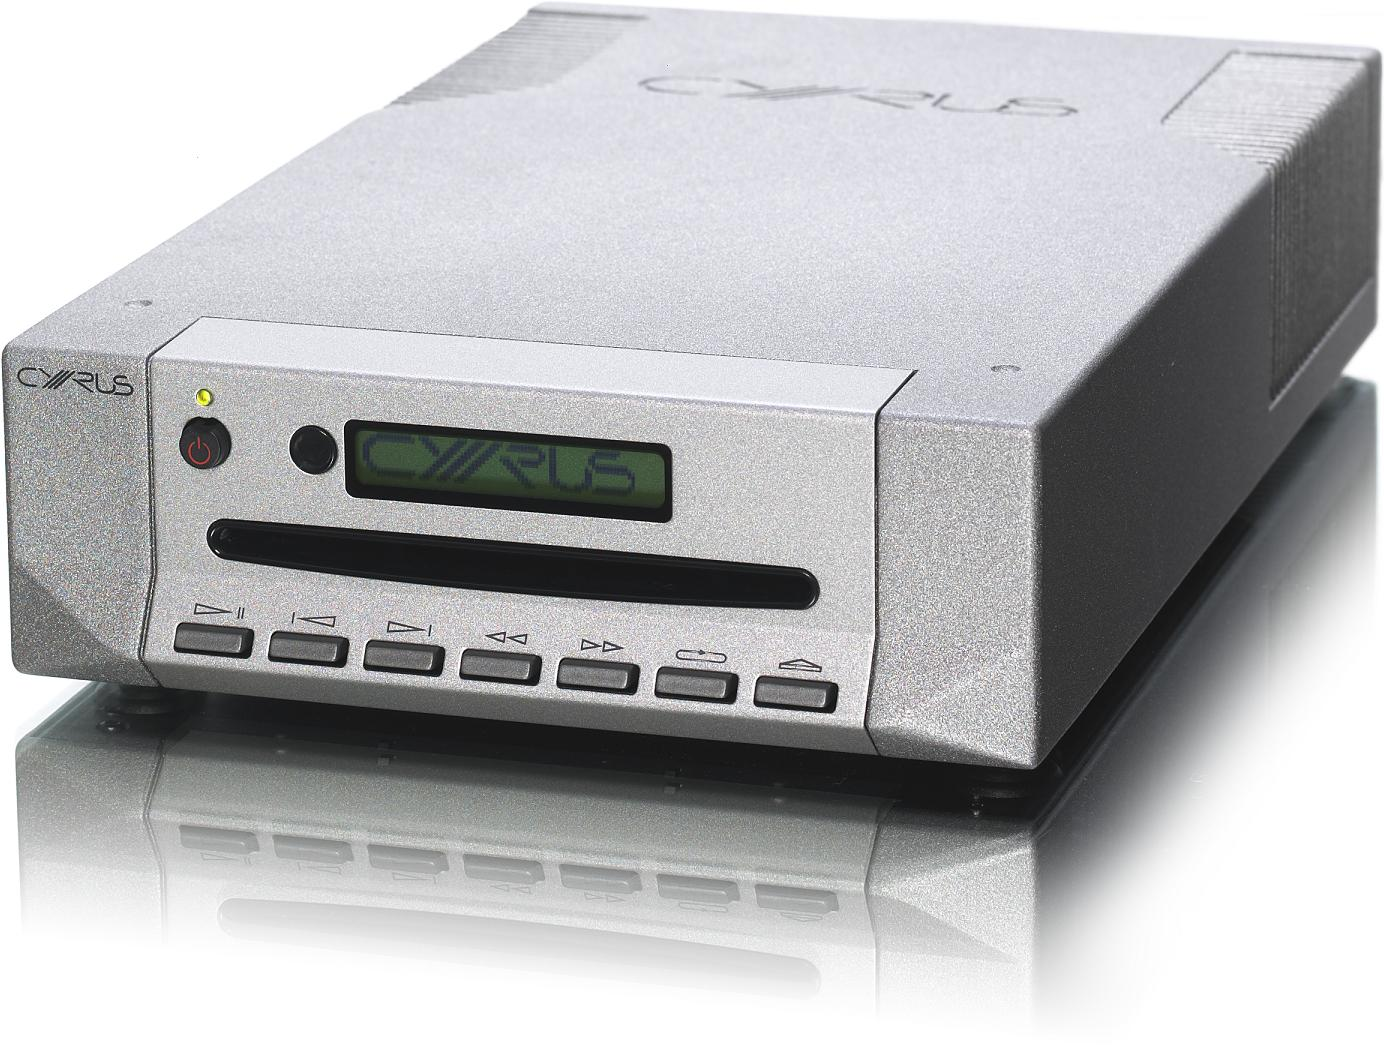 Cyrus Cdt Cd Transport For 163 650 00 In Cd Amp Sacd Players At